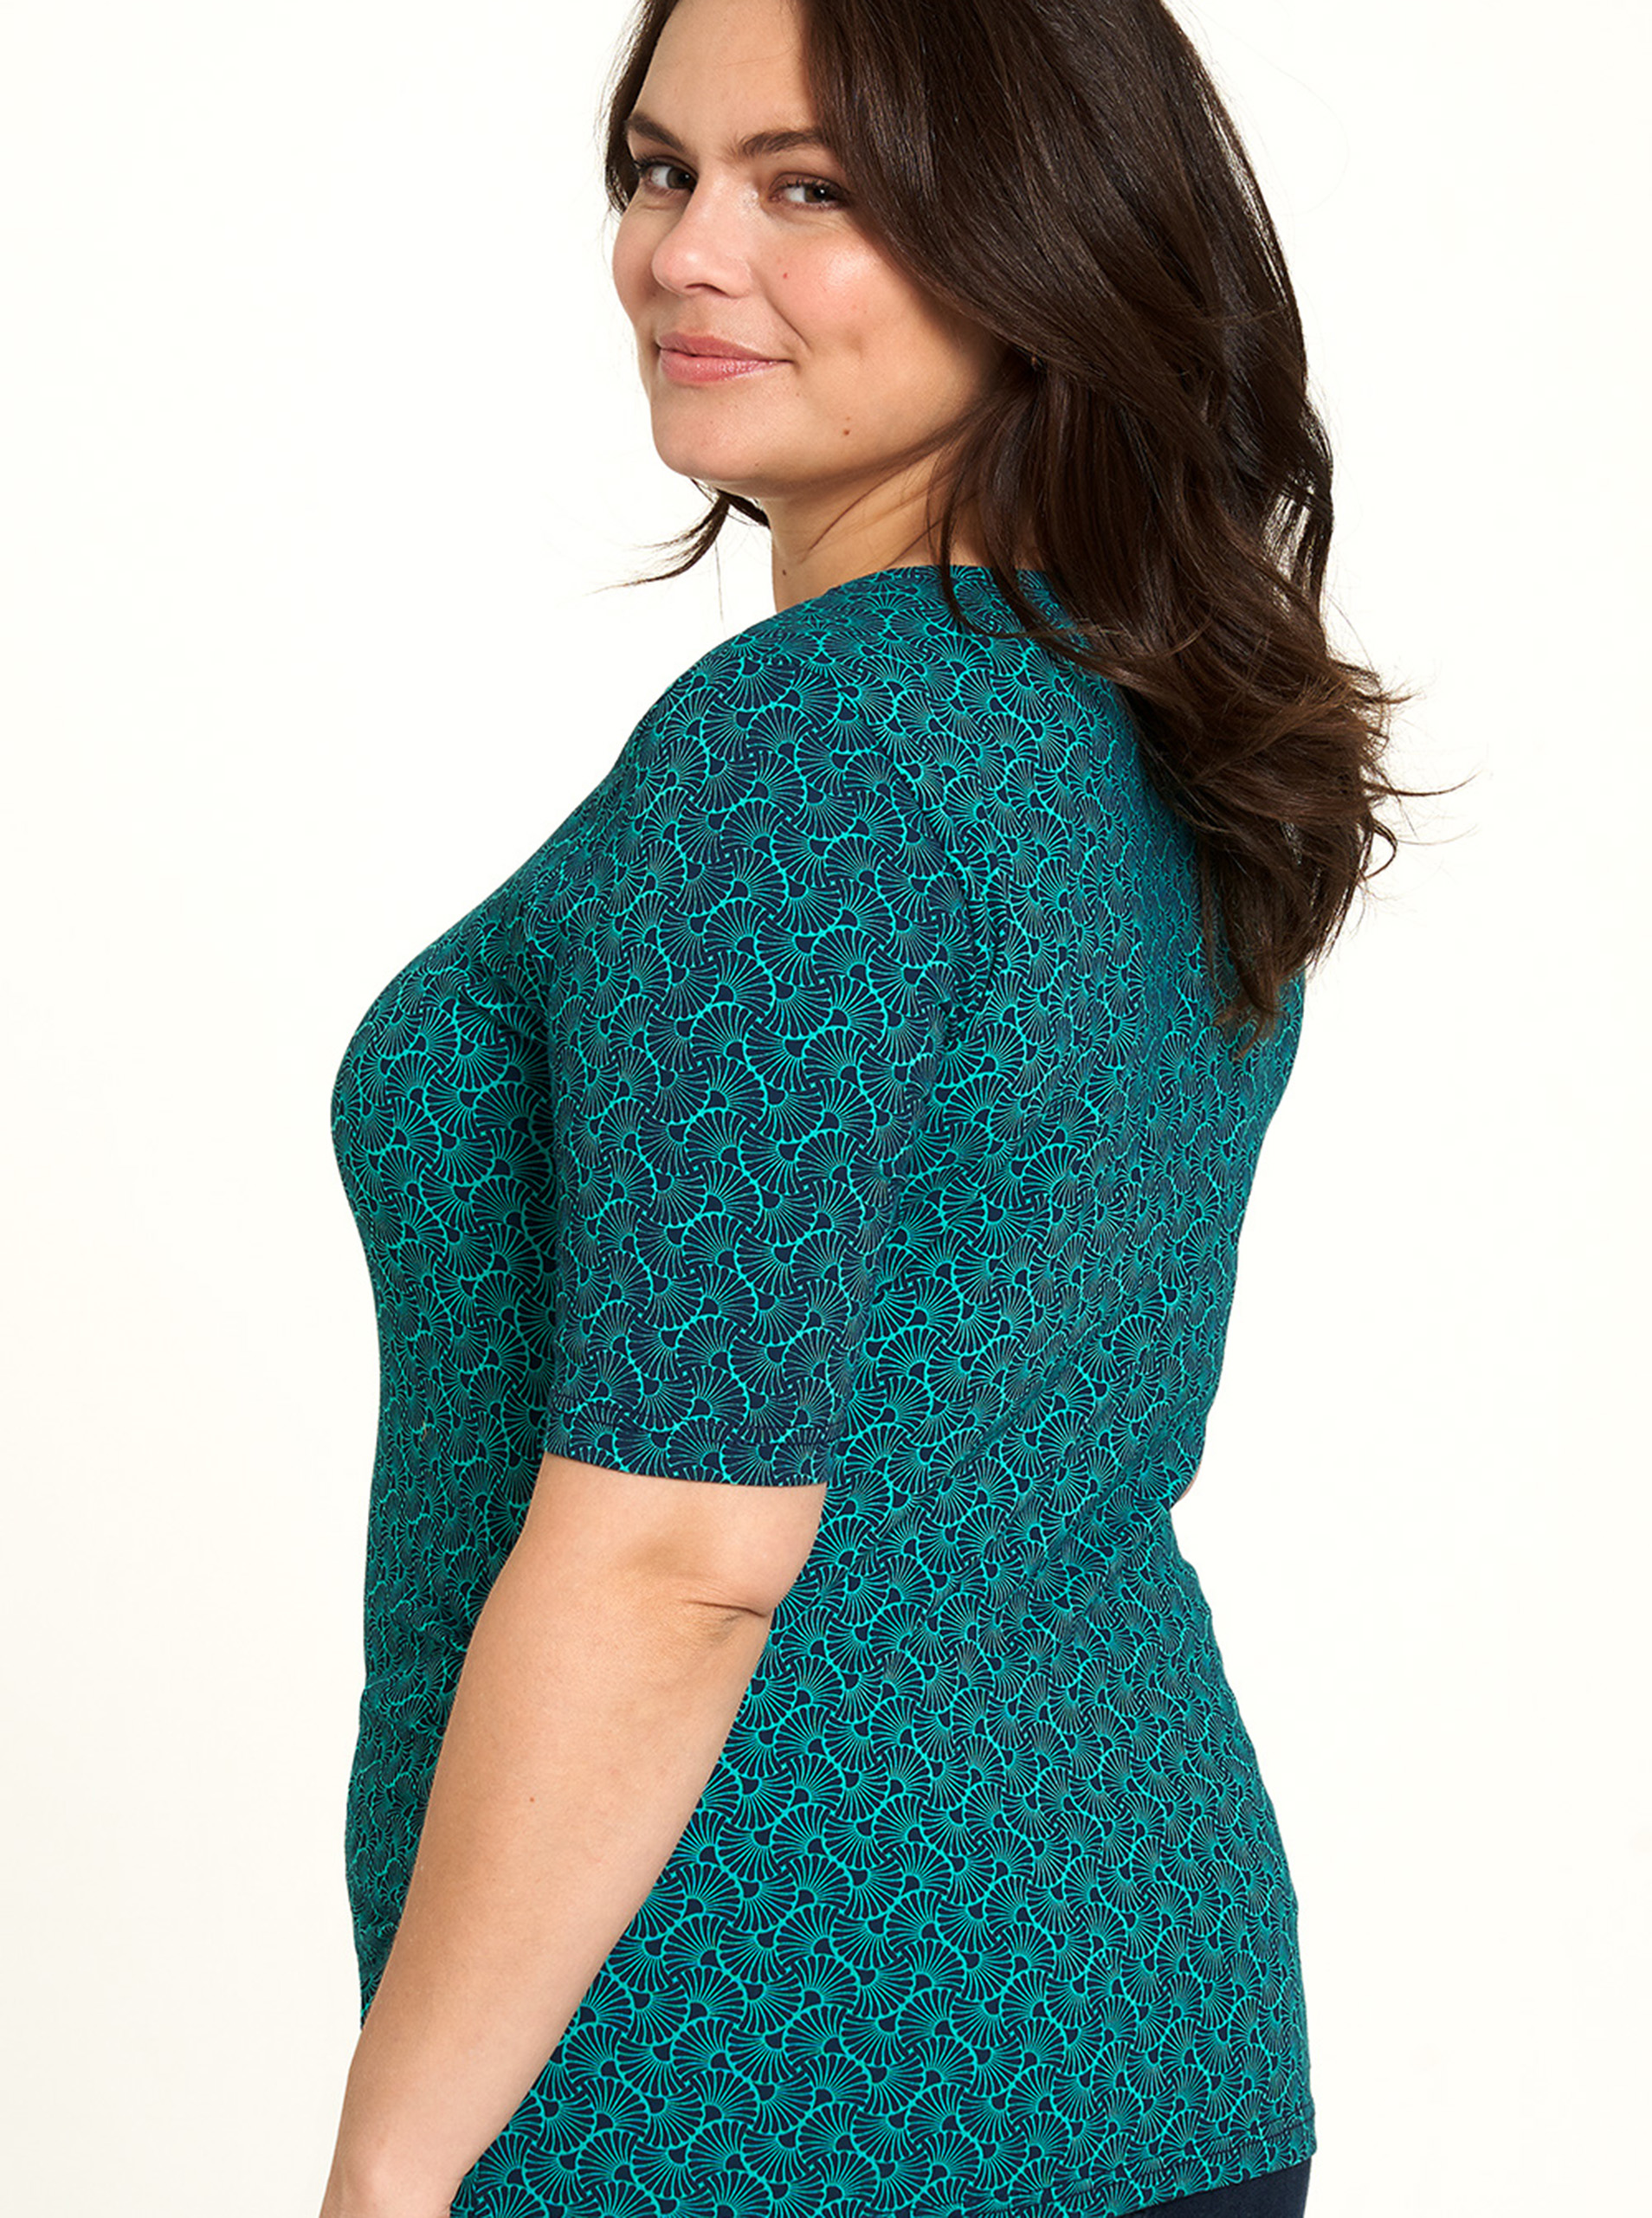 Tranquillo green T-shirt with pattern